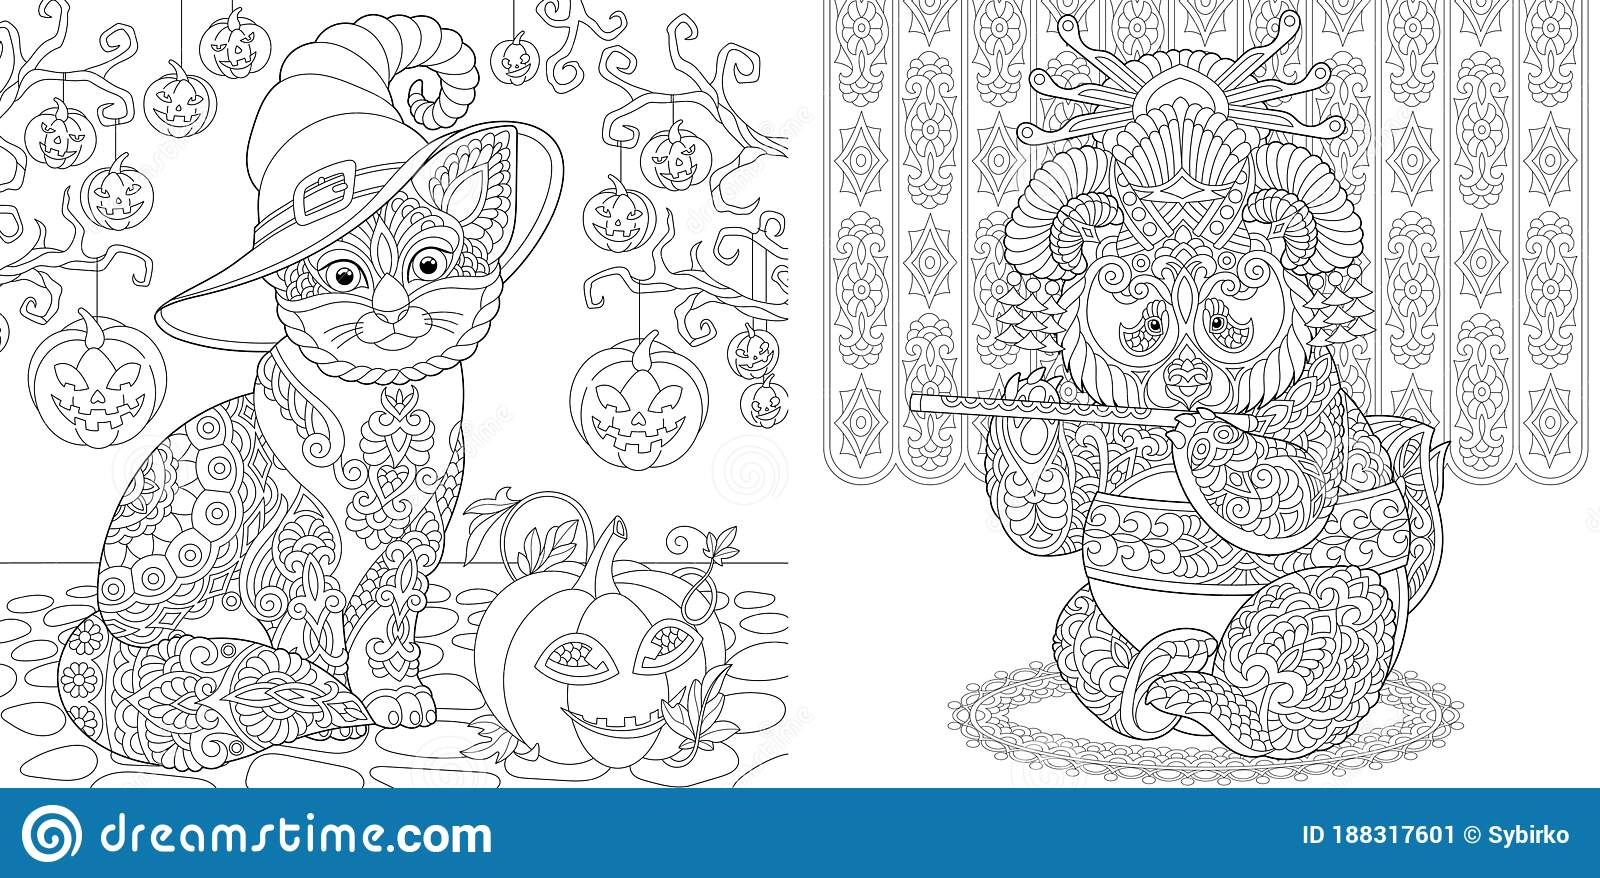 Coloring Pages With Halloween Cat And Panda Geisha Stock Vector Illustration Of Creature Design 188317601